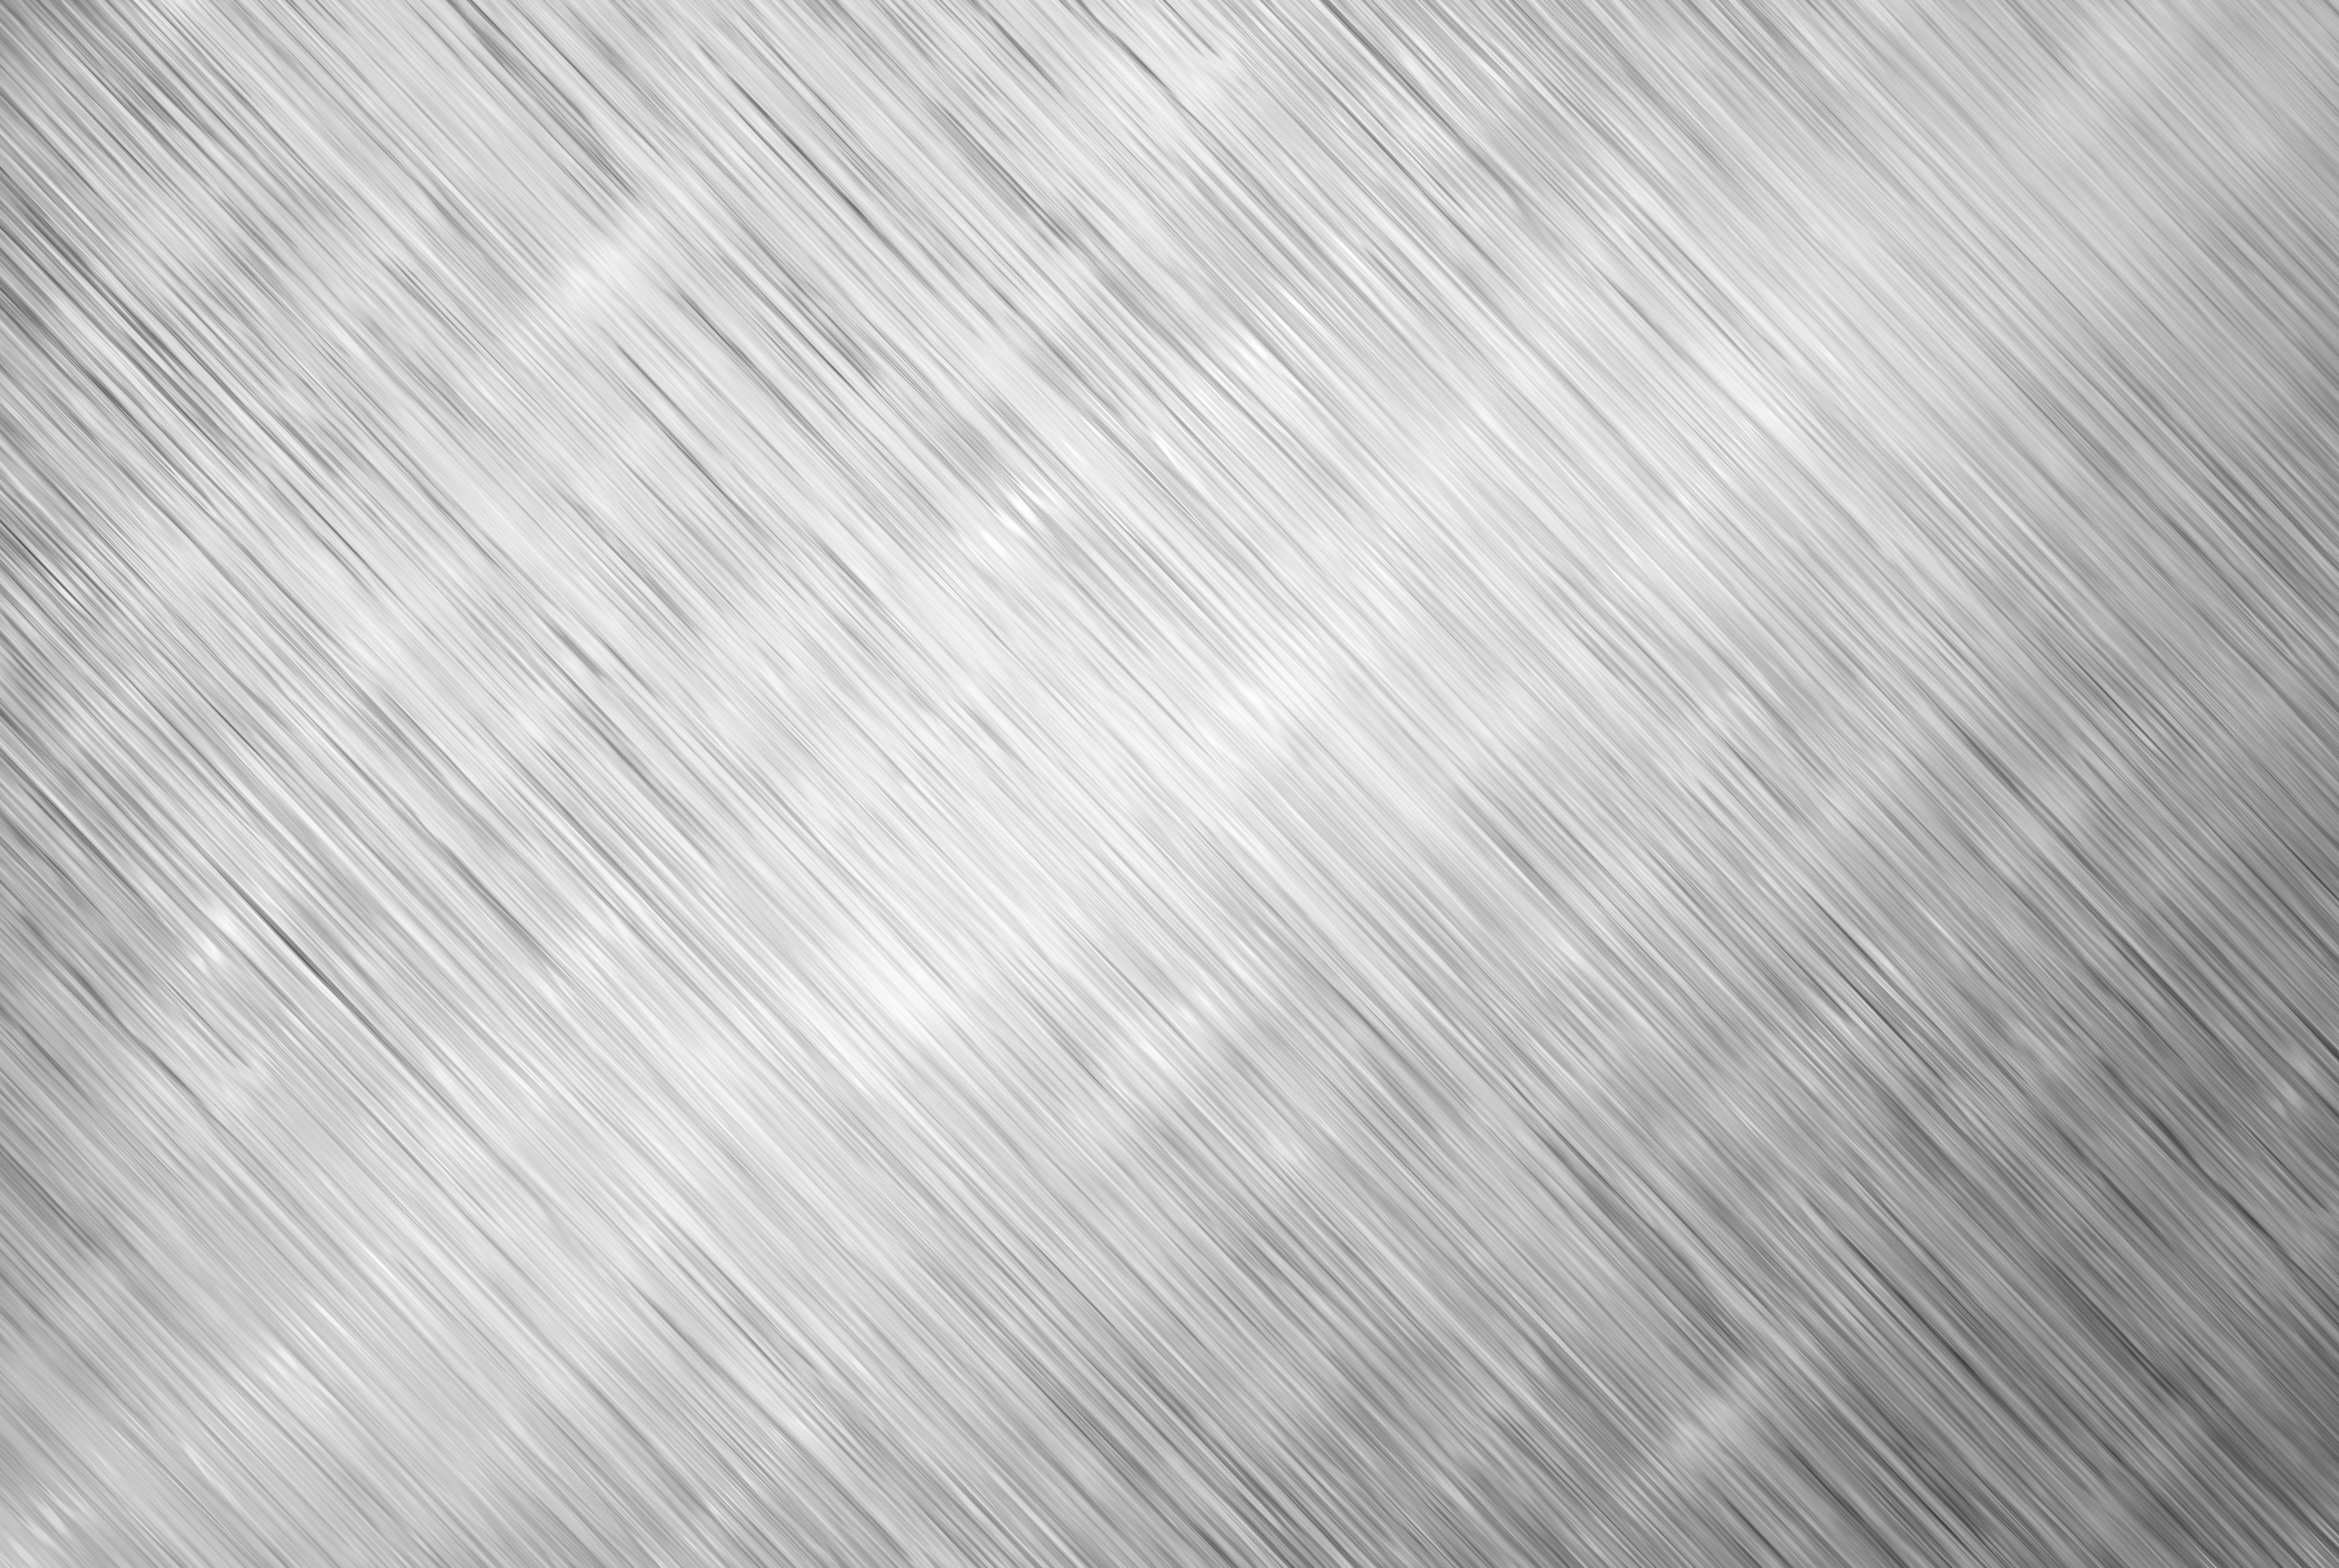 aluminum, texture, background, download, aluminum texture background